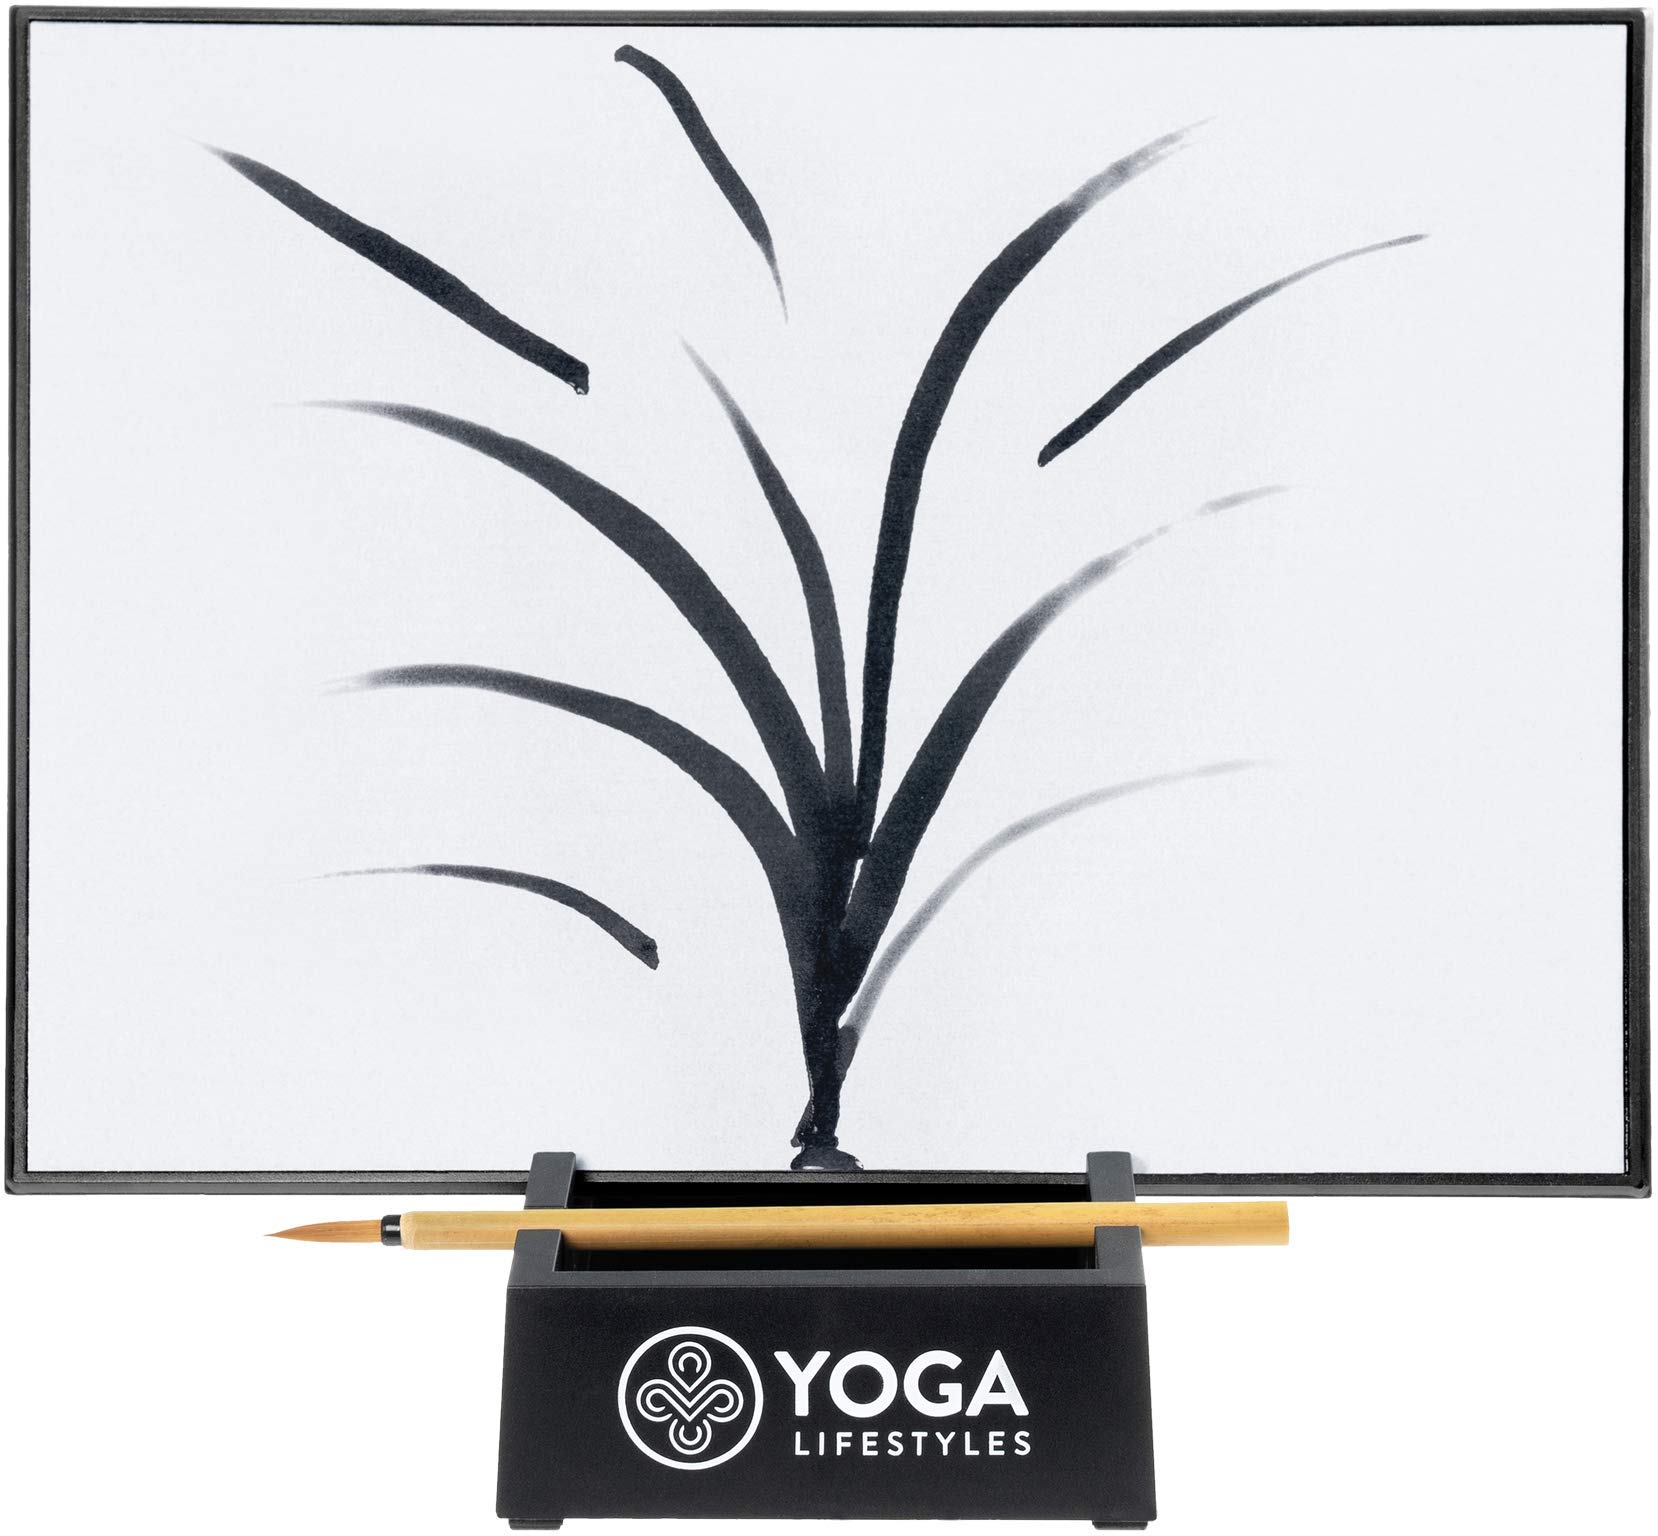 Zen Buddha Water Canvas Board for Stress Relief – with Stand and Bamboo Brush – Inkless, Disappearing Art – Art Board for Meditation, Relaxation